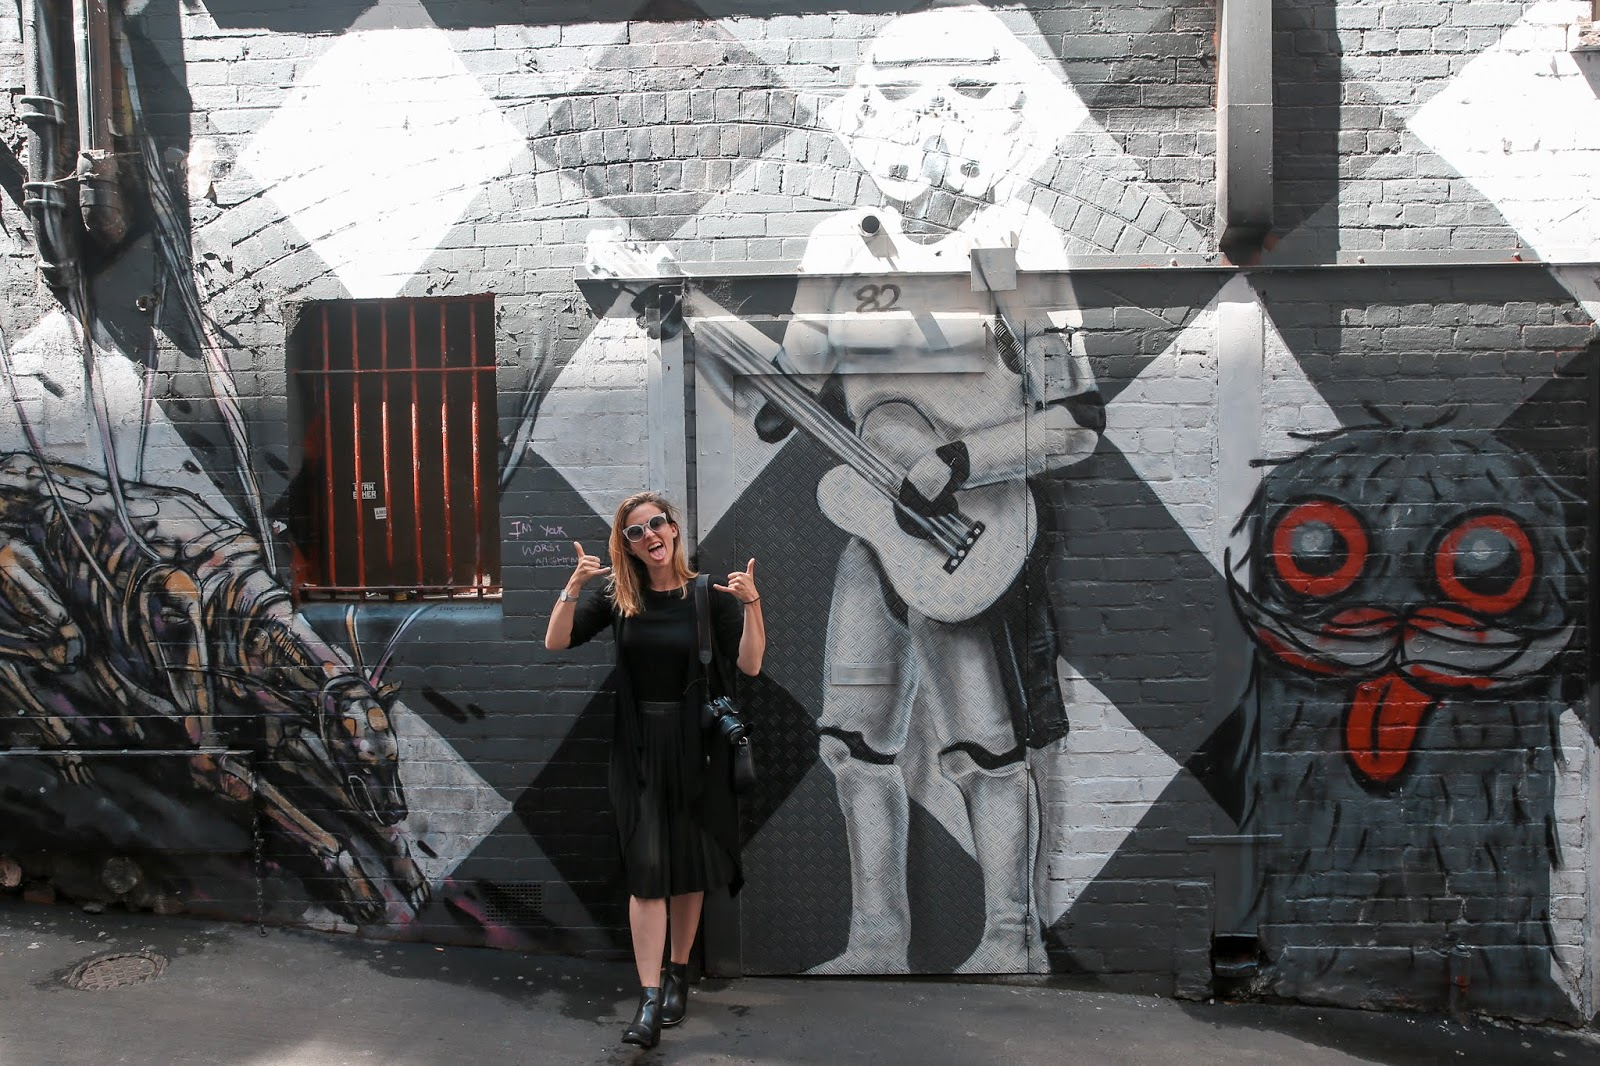 Street art in Melbourne Alicia Mara